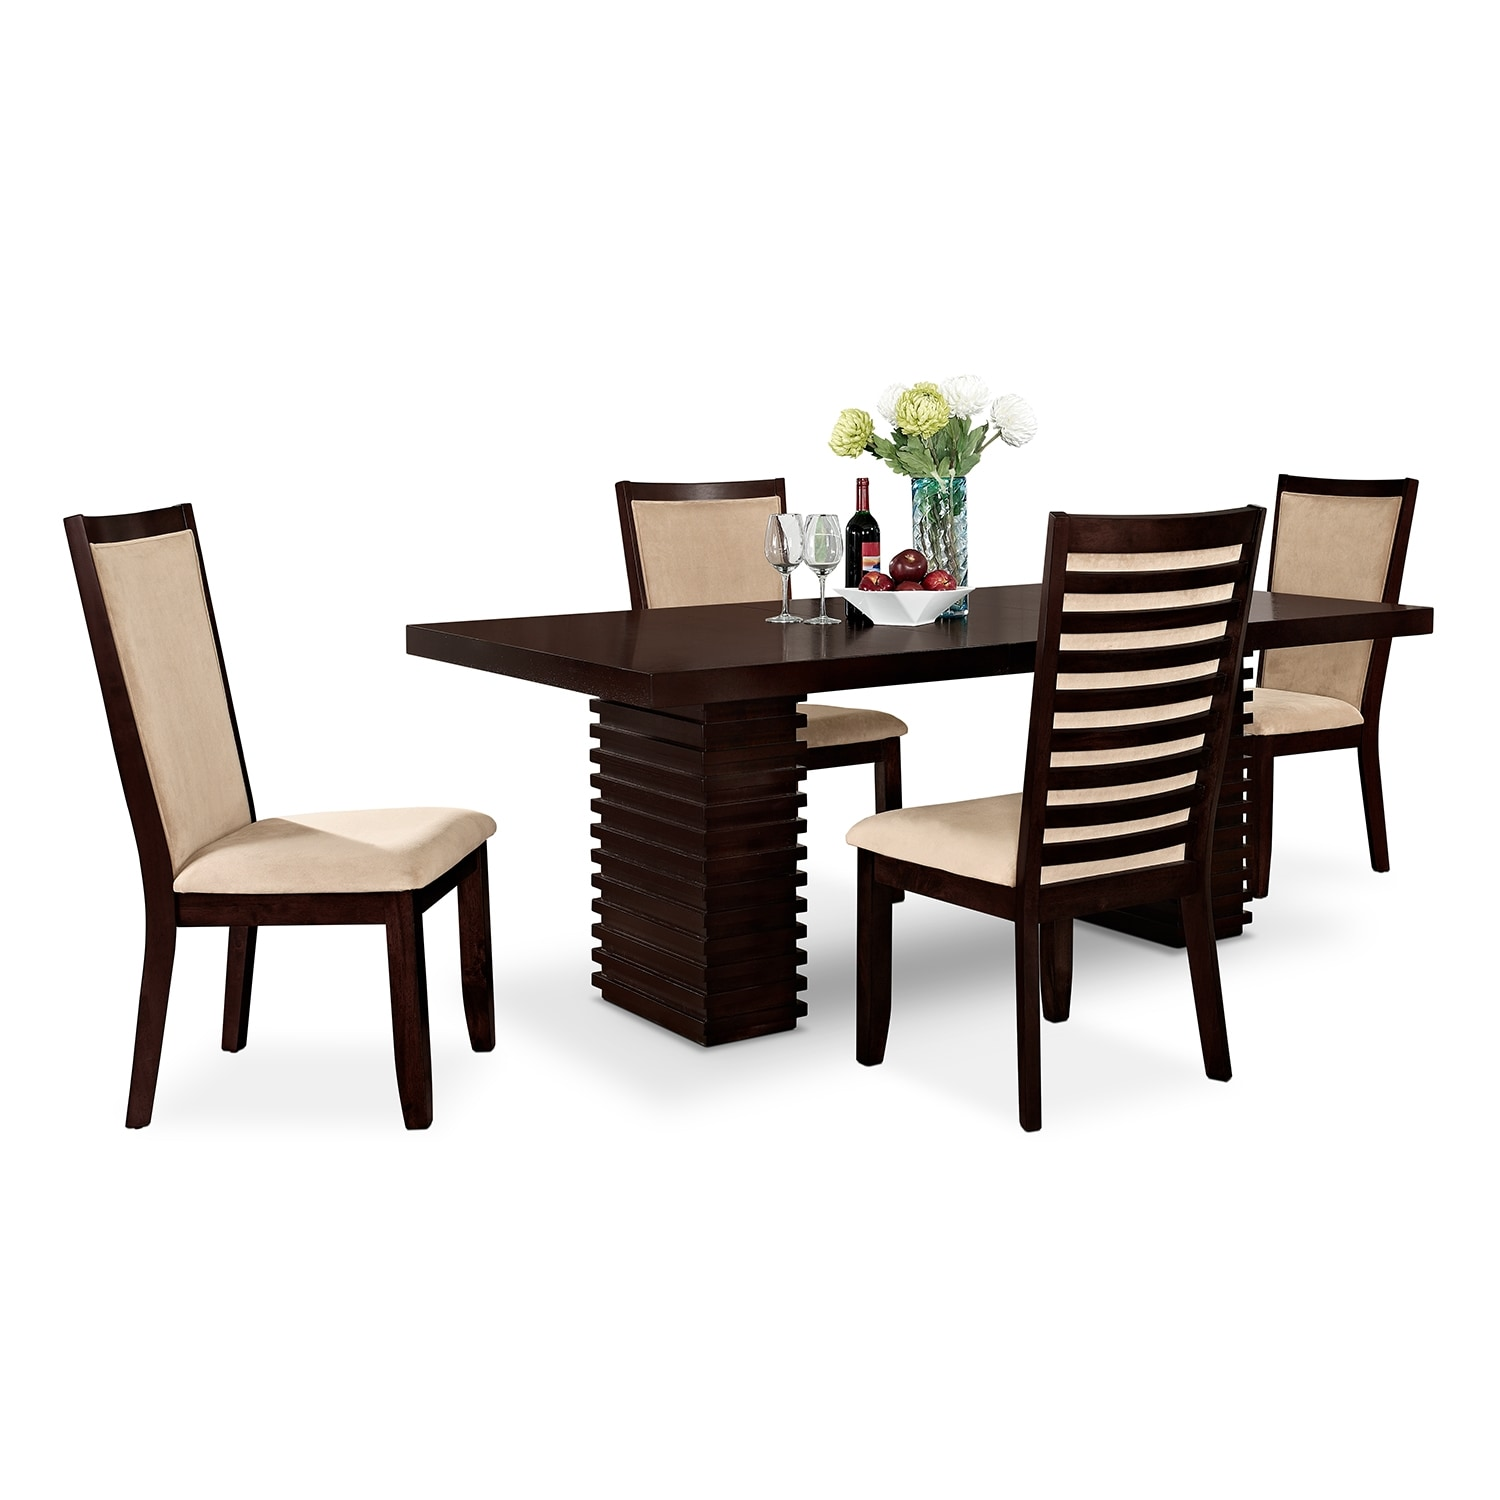 Dining Room Furniture - Paragon 5 Pc. Dinette